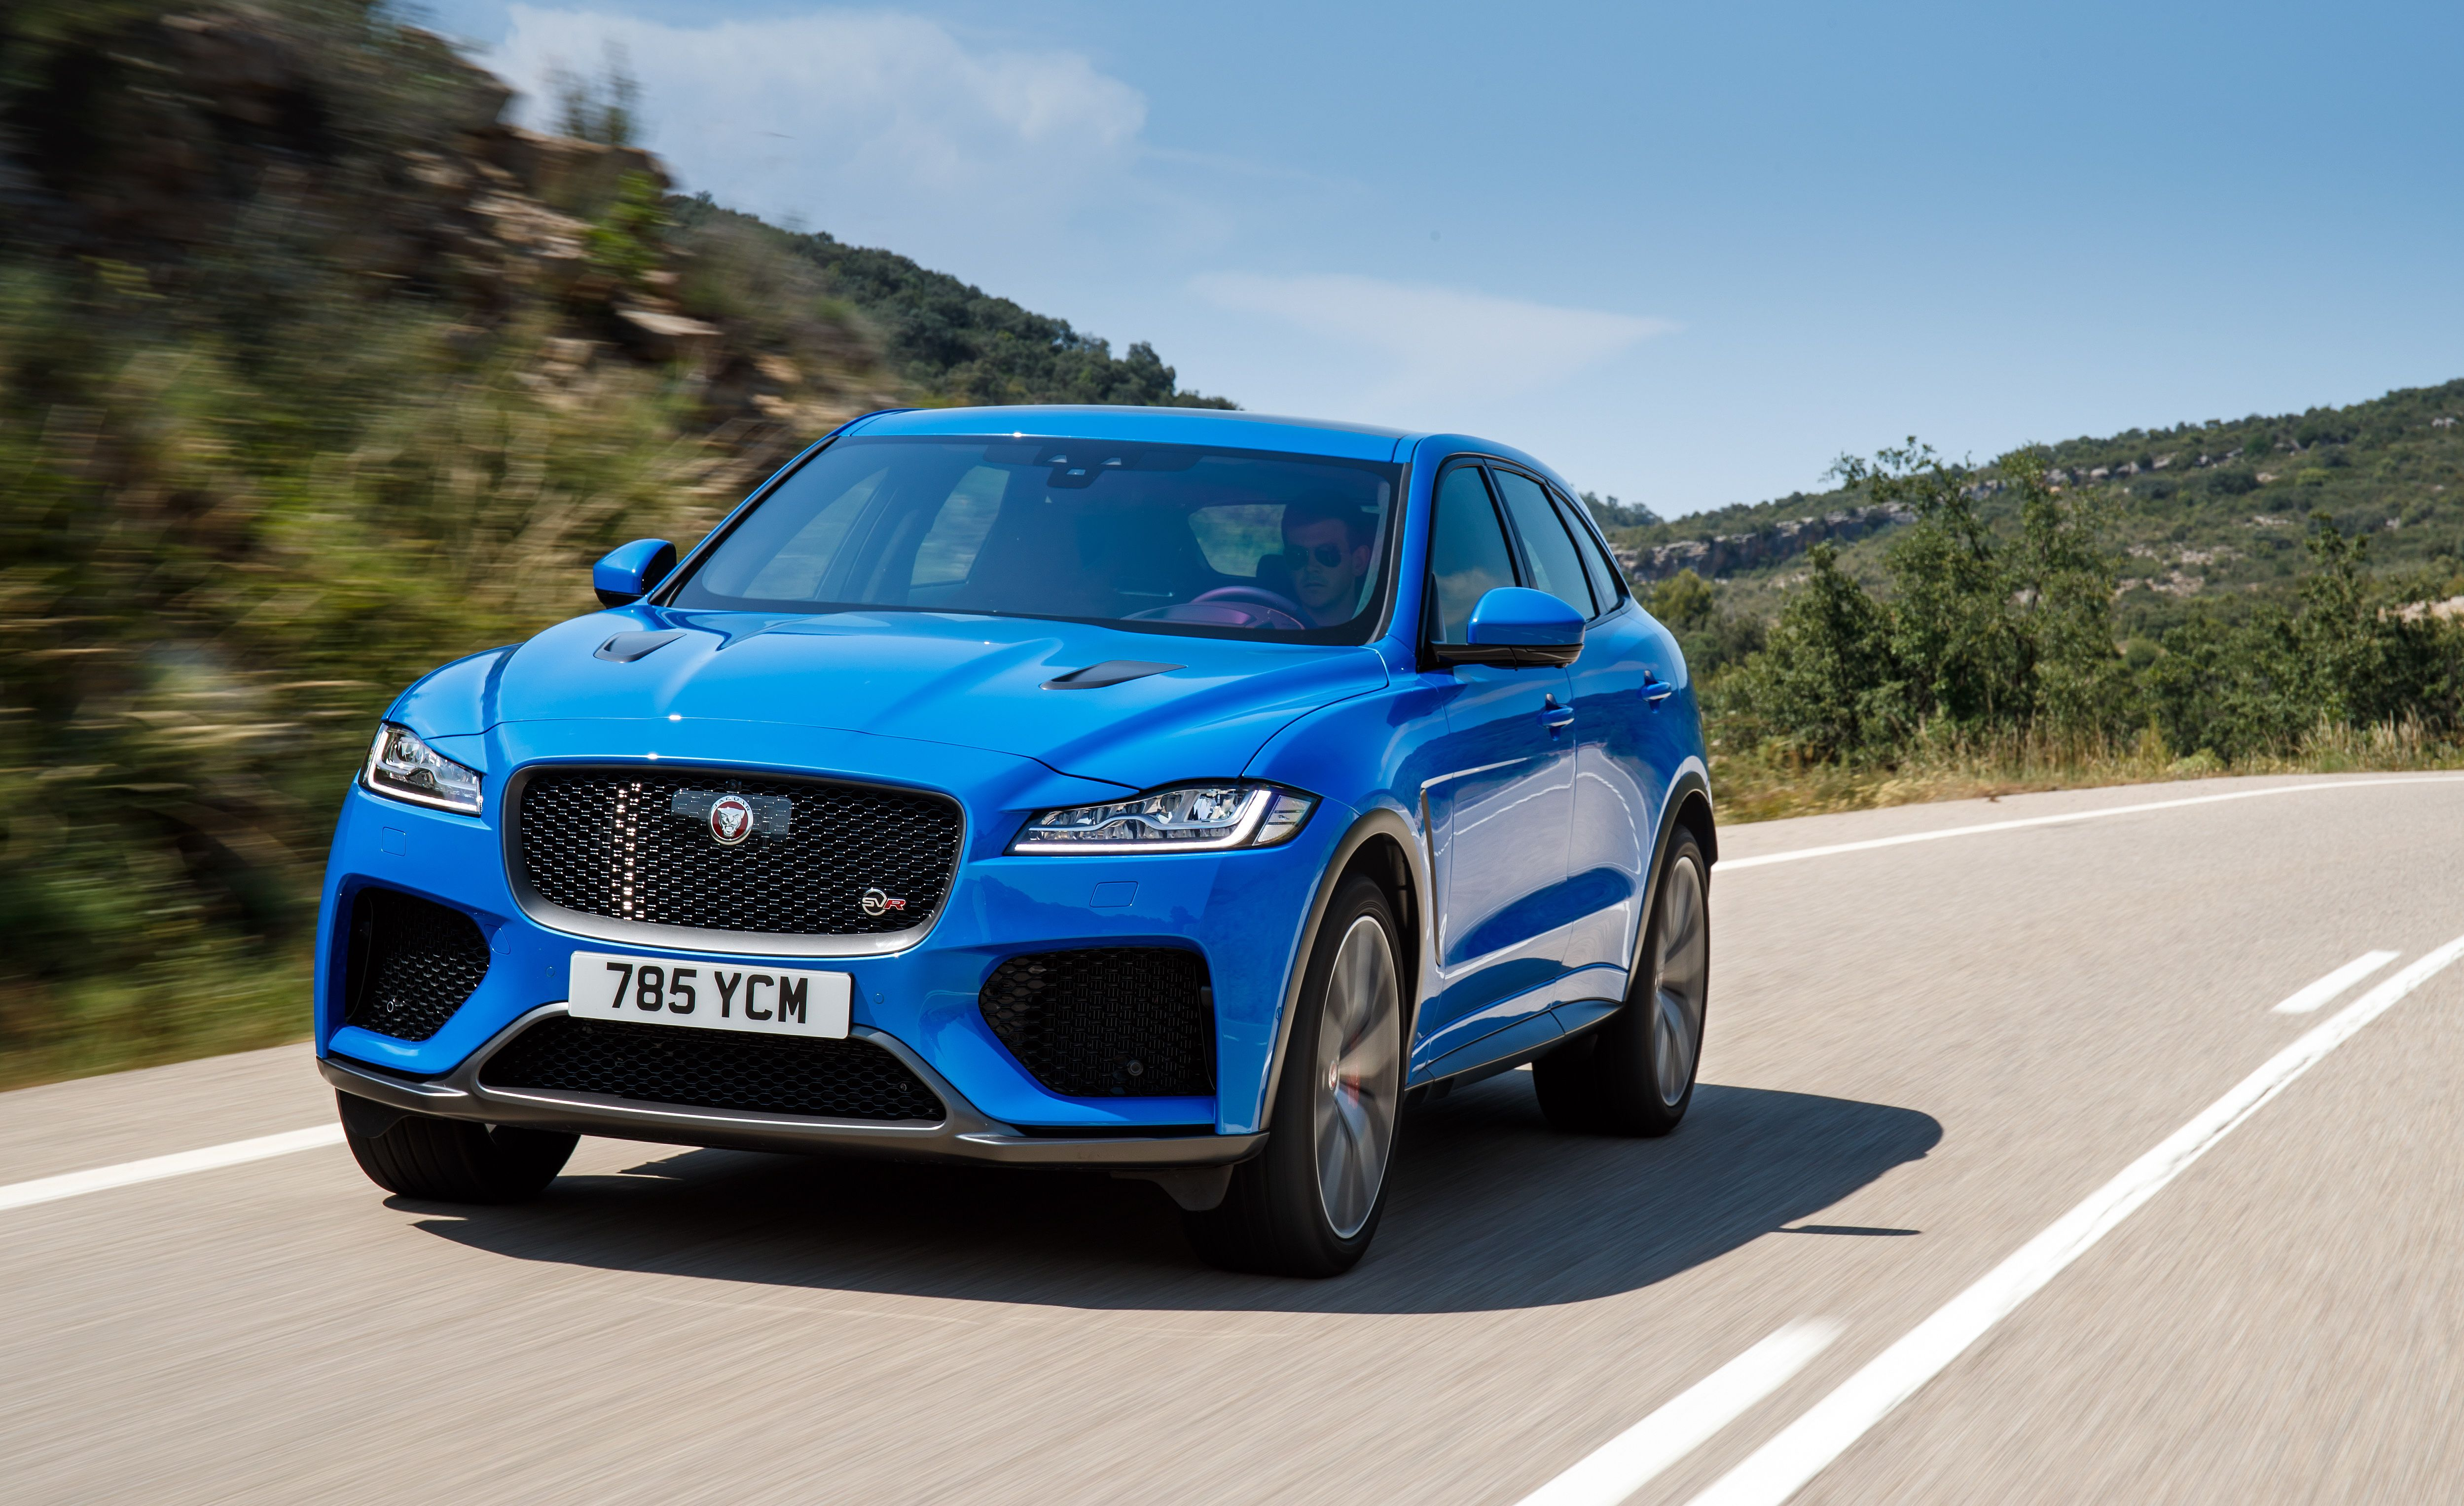 Comments on: The 2019 Jaguar F-Pace SVR Is Fast Without ...